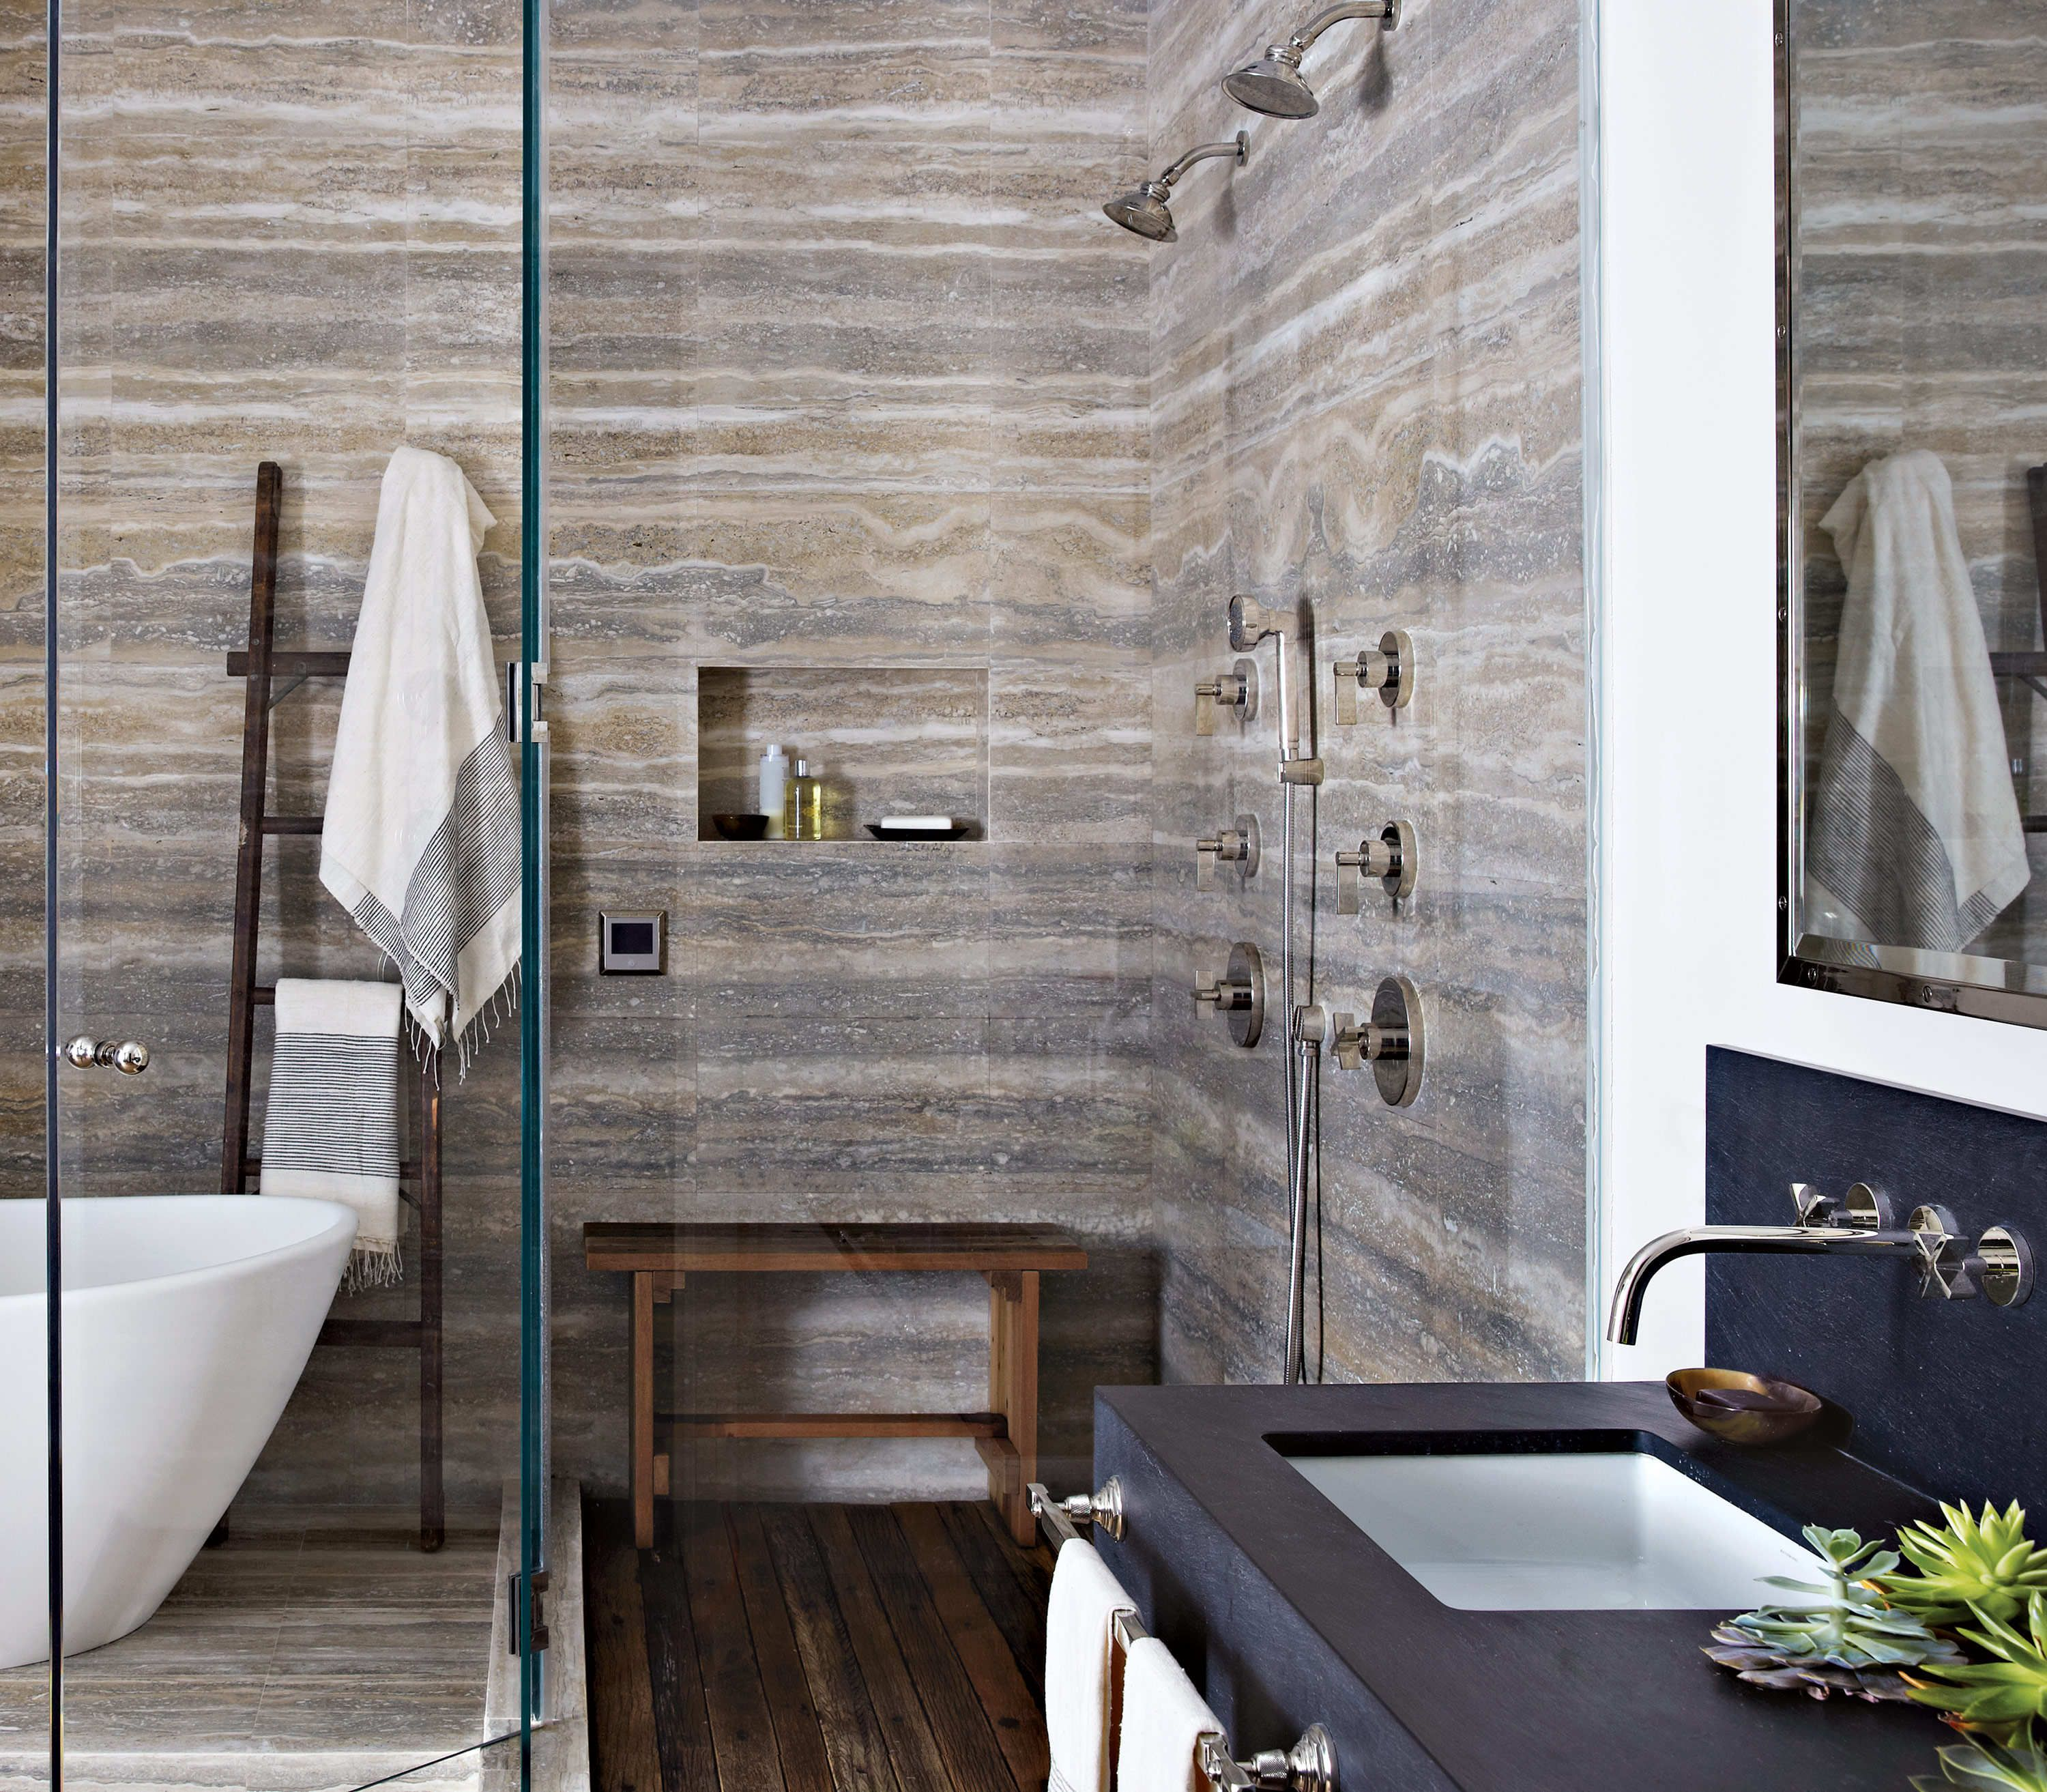 In The Master Bath Silver Travertine Was Installed So Its Veins And Patterns Are Contiguous Creating Earance Of A Single Slab Stone